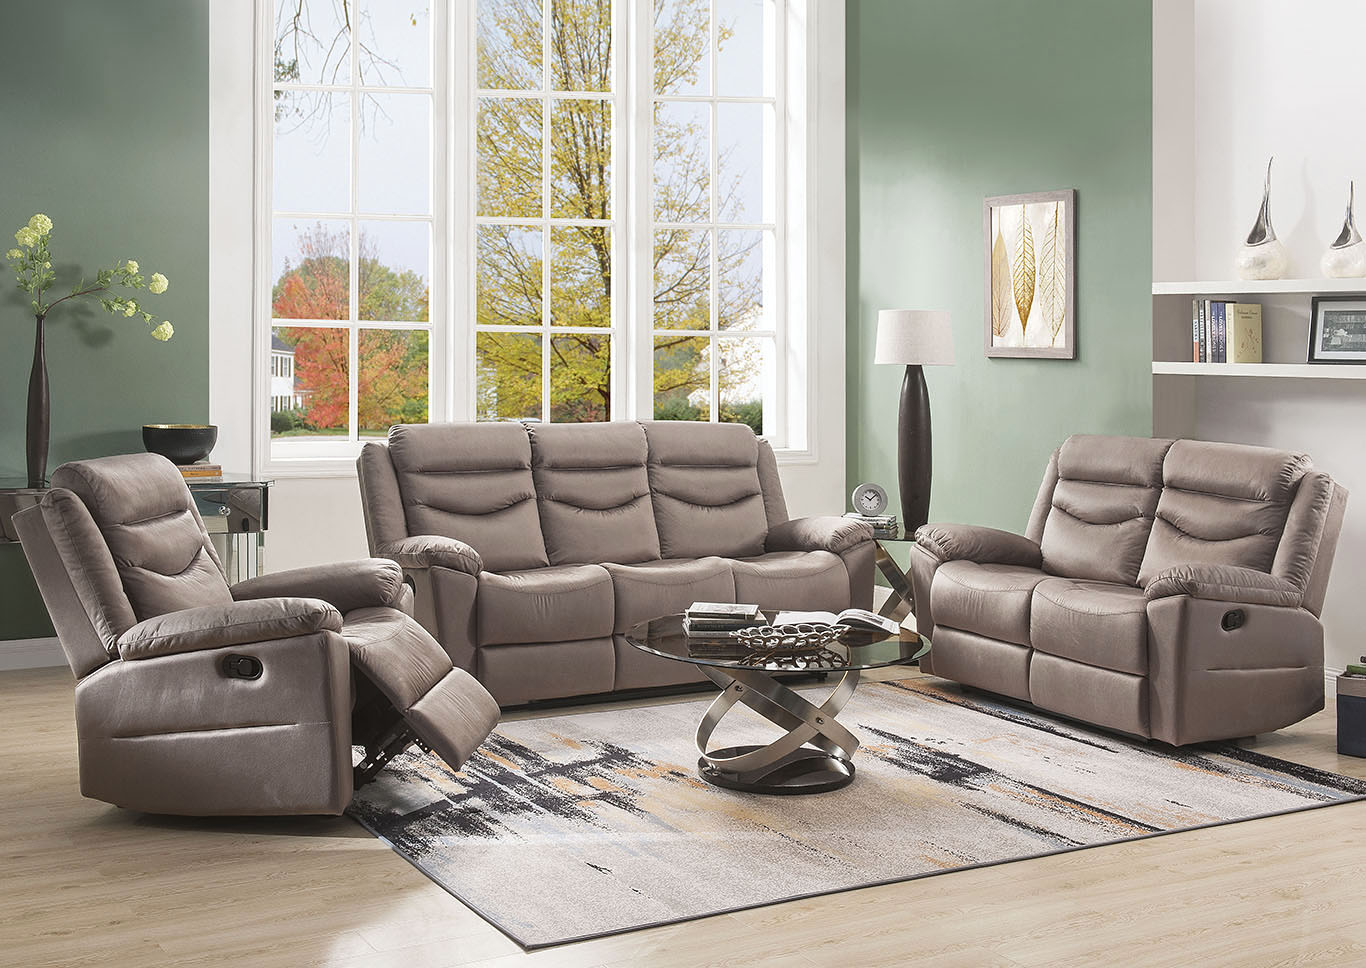 Fiacre Beige Reclining Sofa and Loveseat,Acme